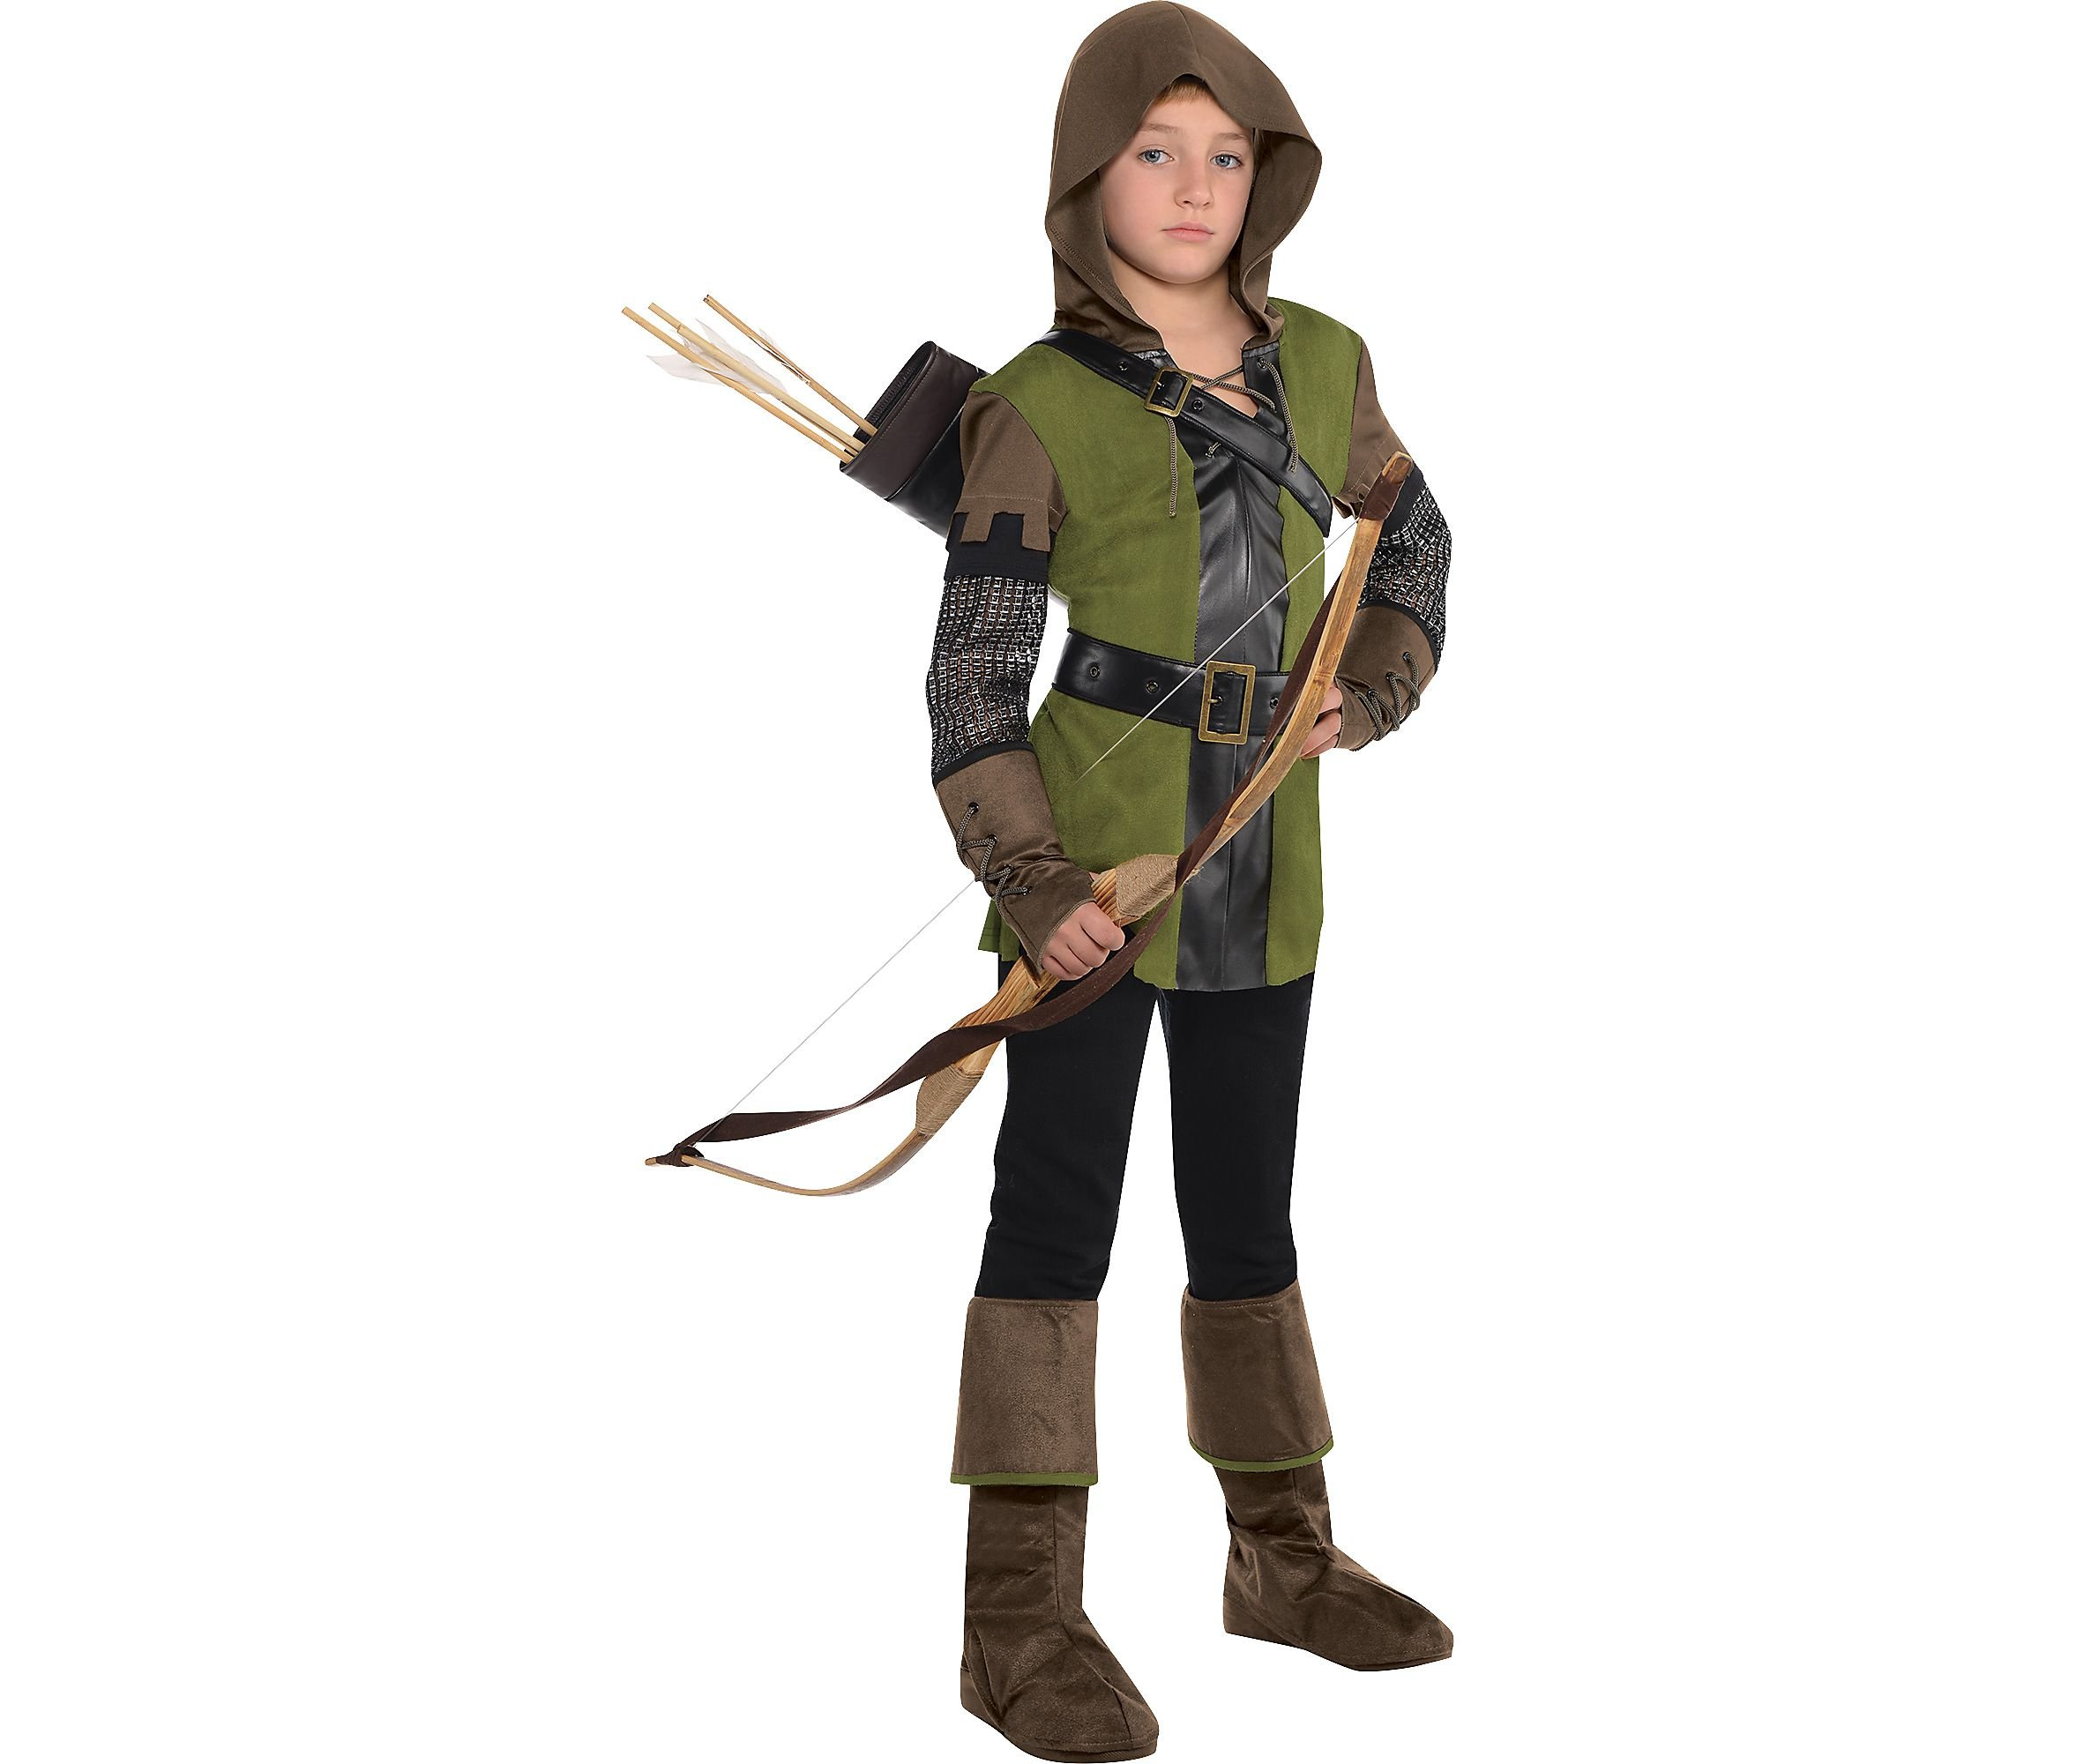 AMSCAN Prince of Thieves Robin Hood Halloween Costume for Boys, Large, with Included Accessories by Amscan (Image #1)